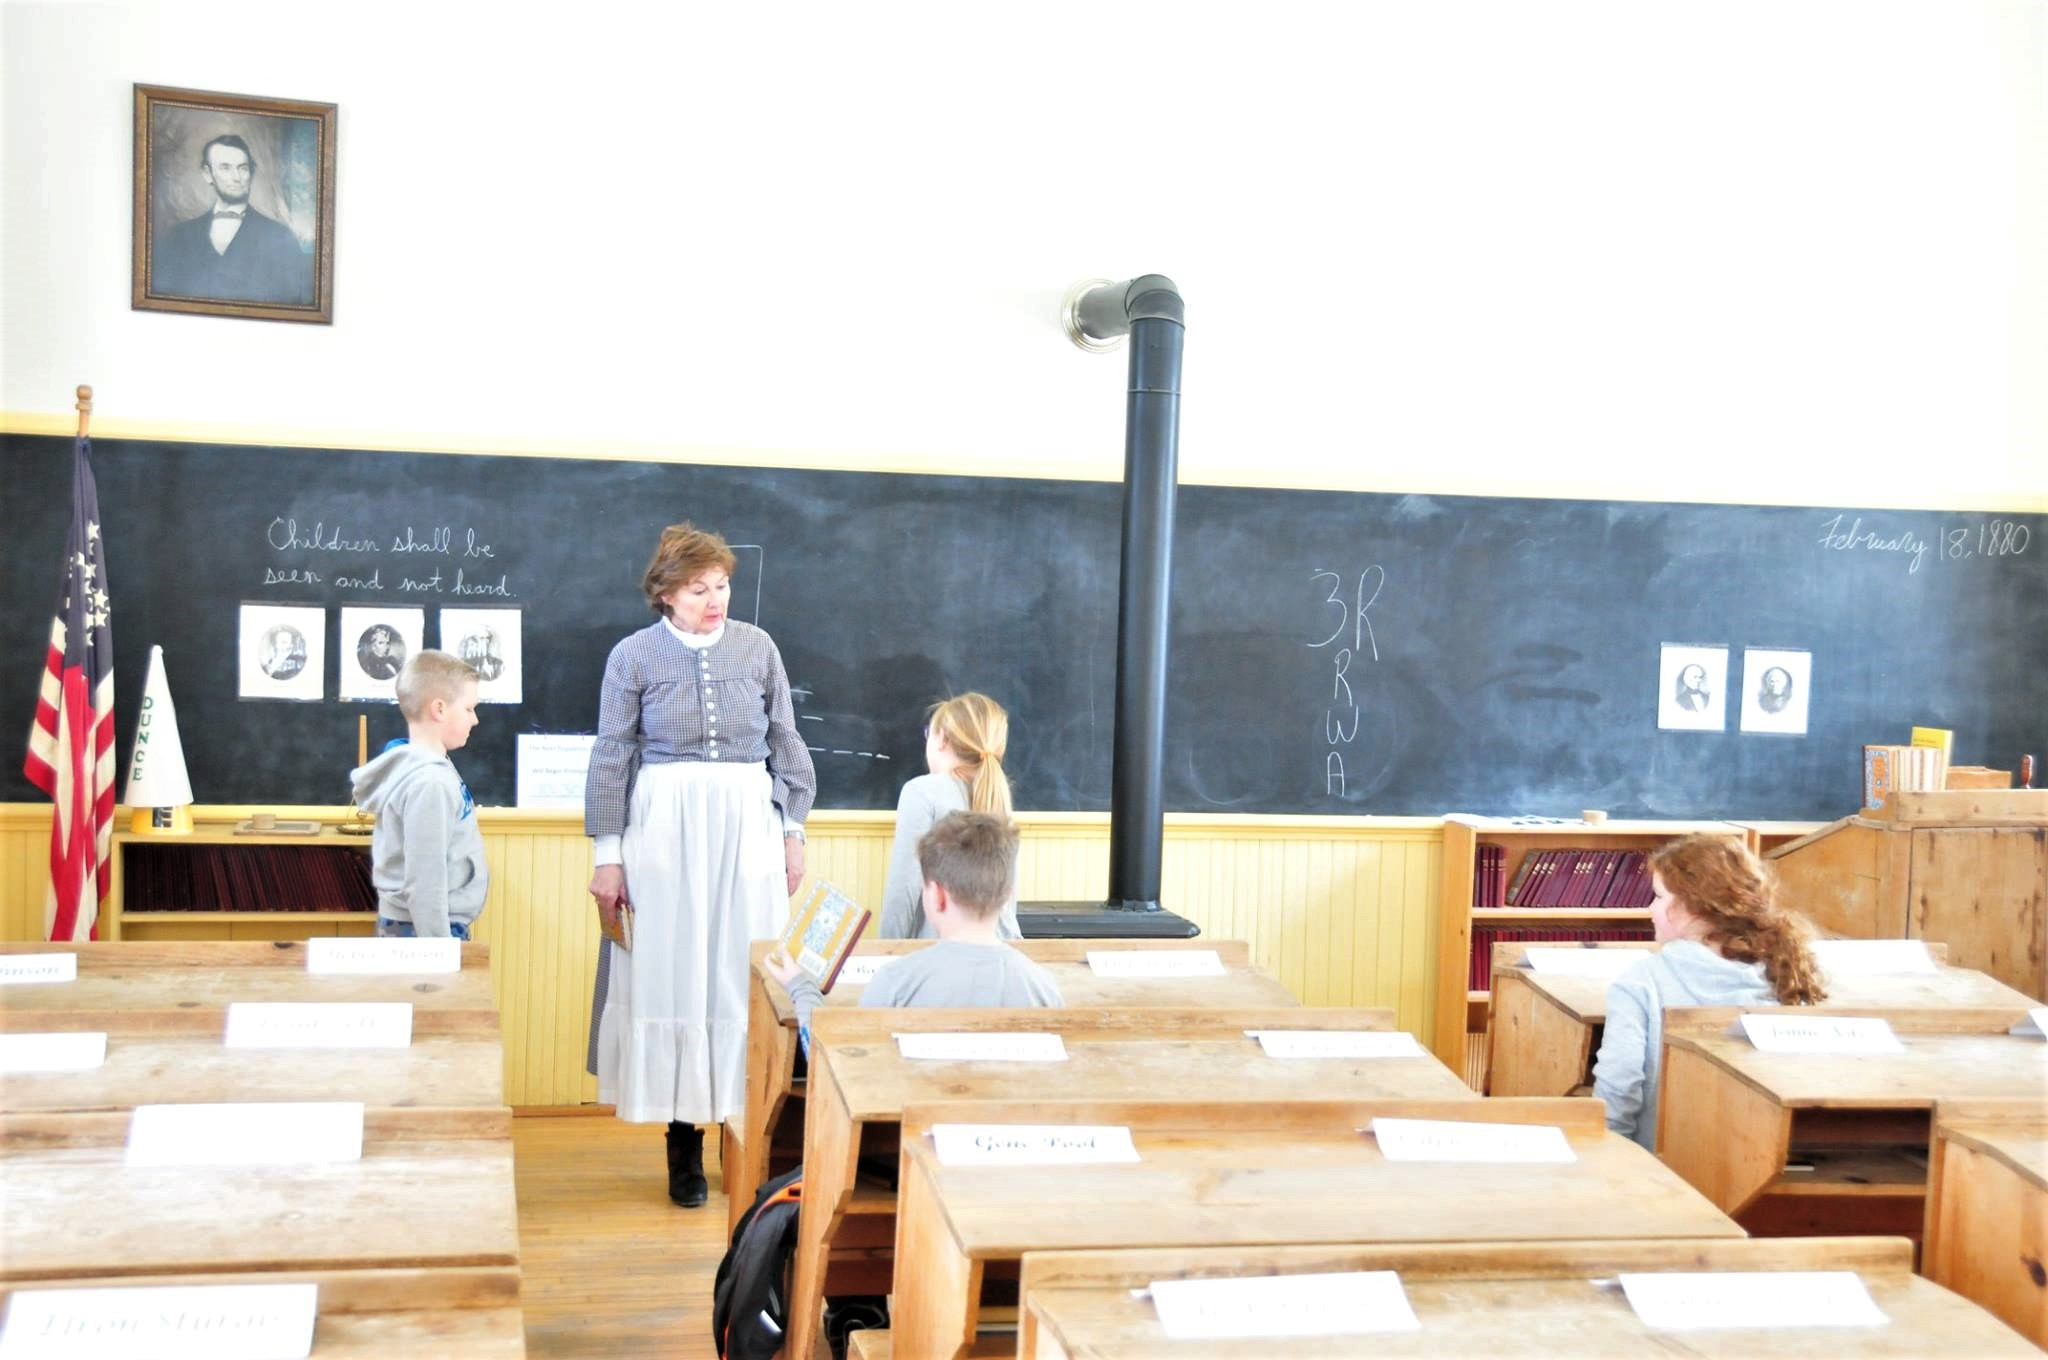 Learning in a one-room schoolhouse: